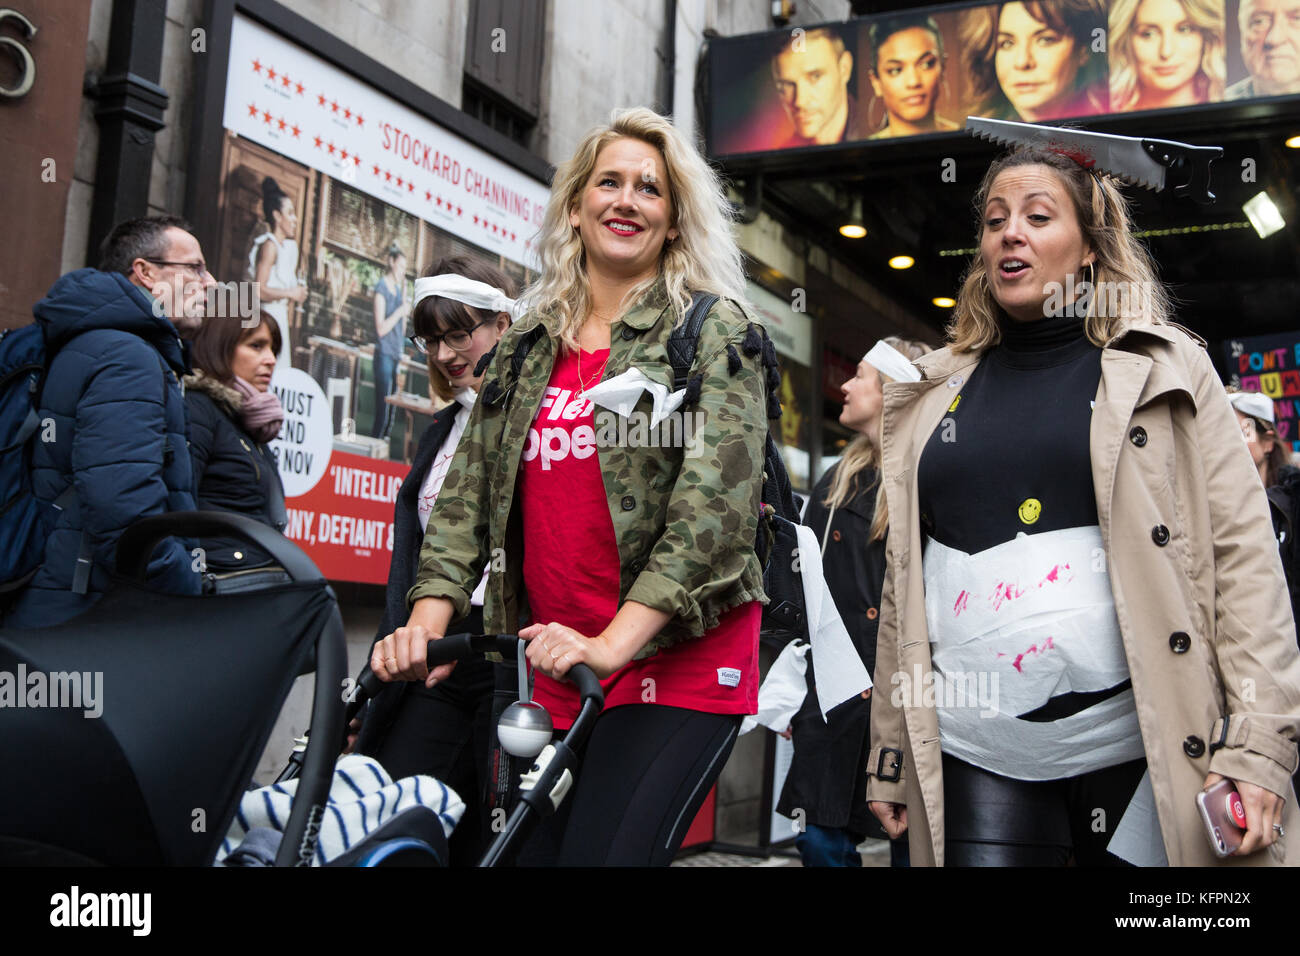 London, UK. 31st October, 2017. Anna Whitehouse, Vlogger, takes part in the March of the Mummies with supporters - Stock Image